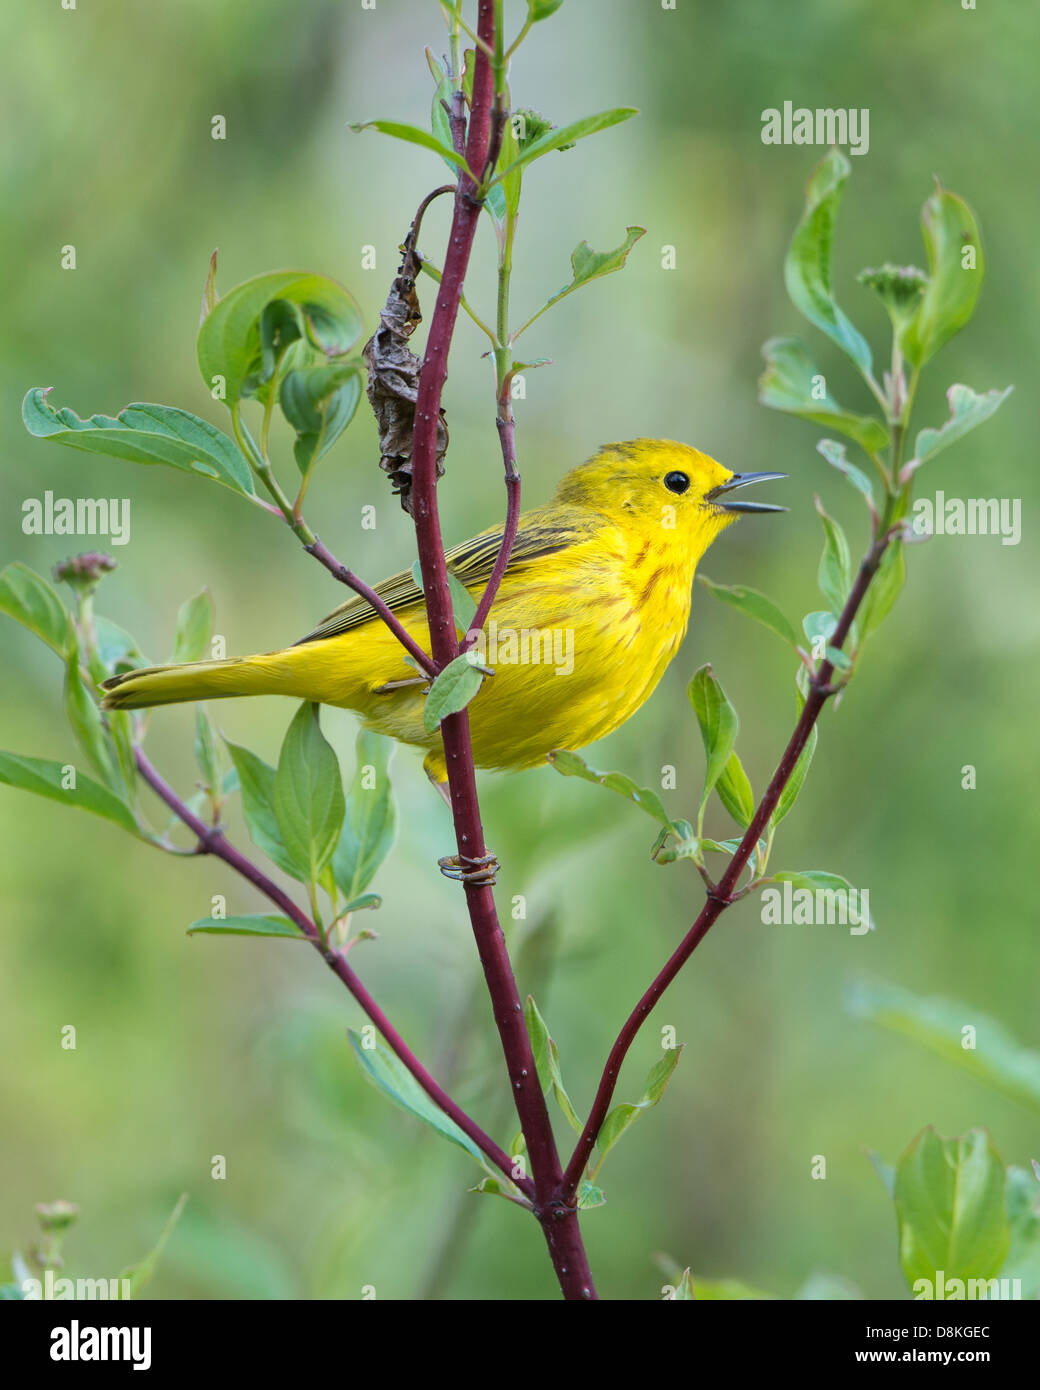 A singing yellow warbler (Dendroica petechia) male, Missoula, Montana - Stock Image